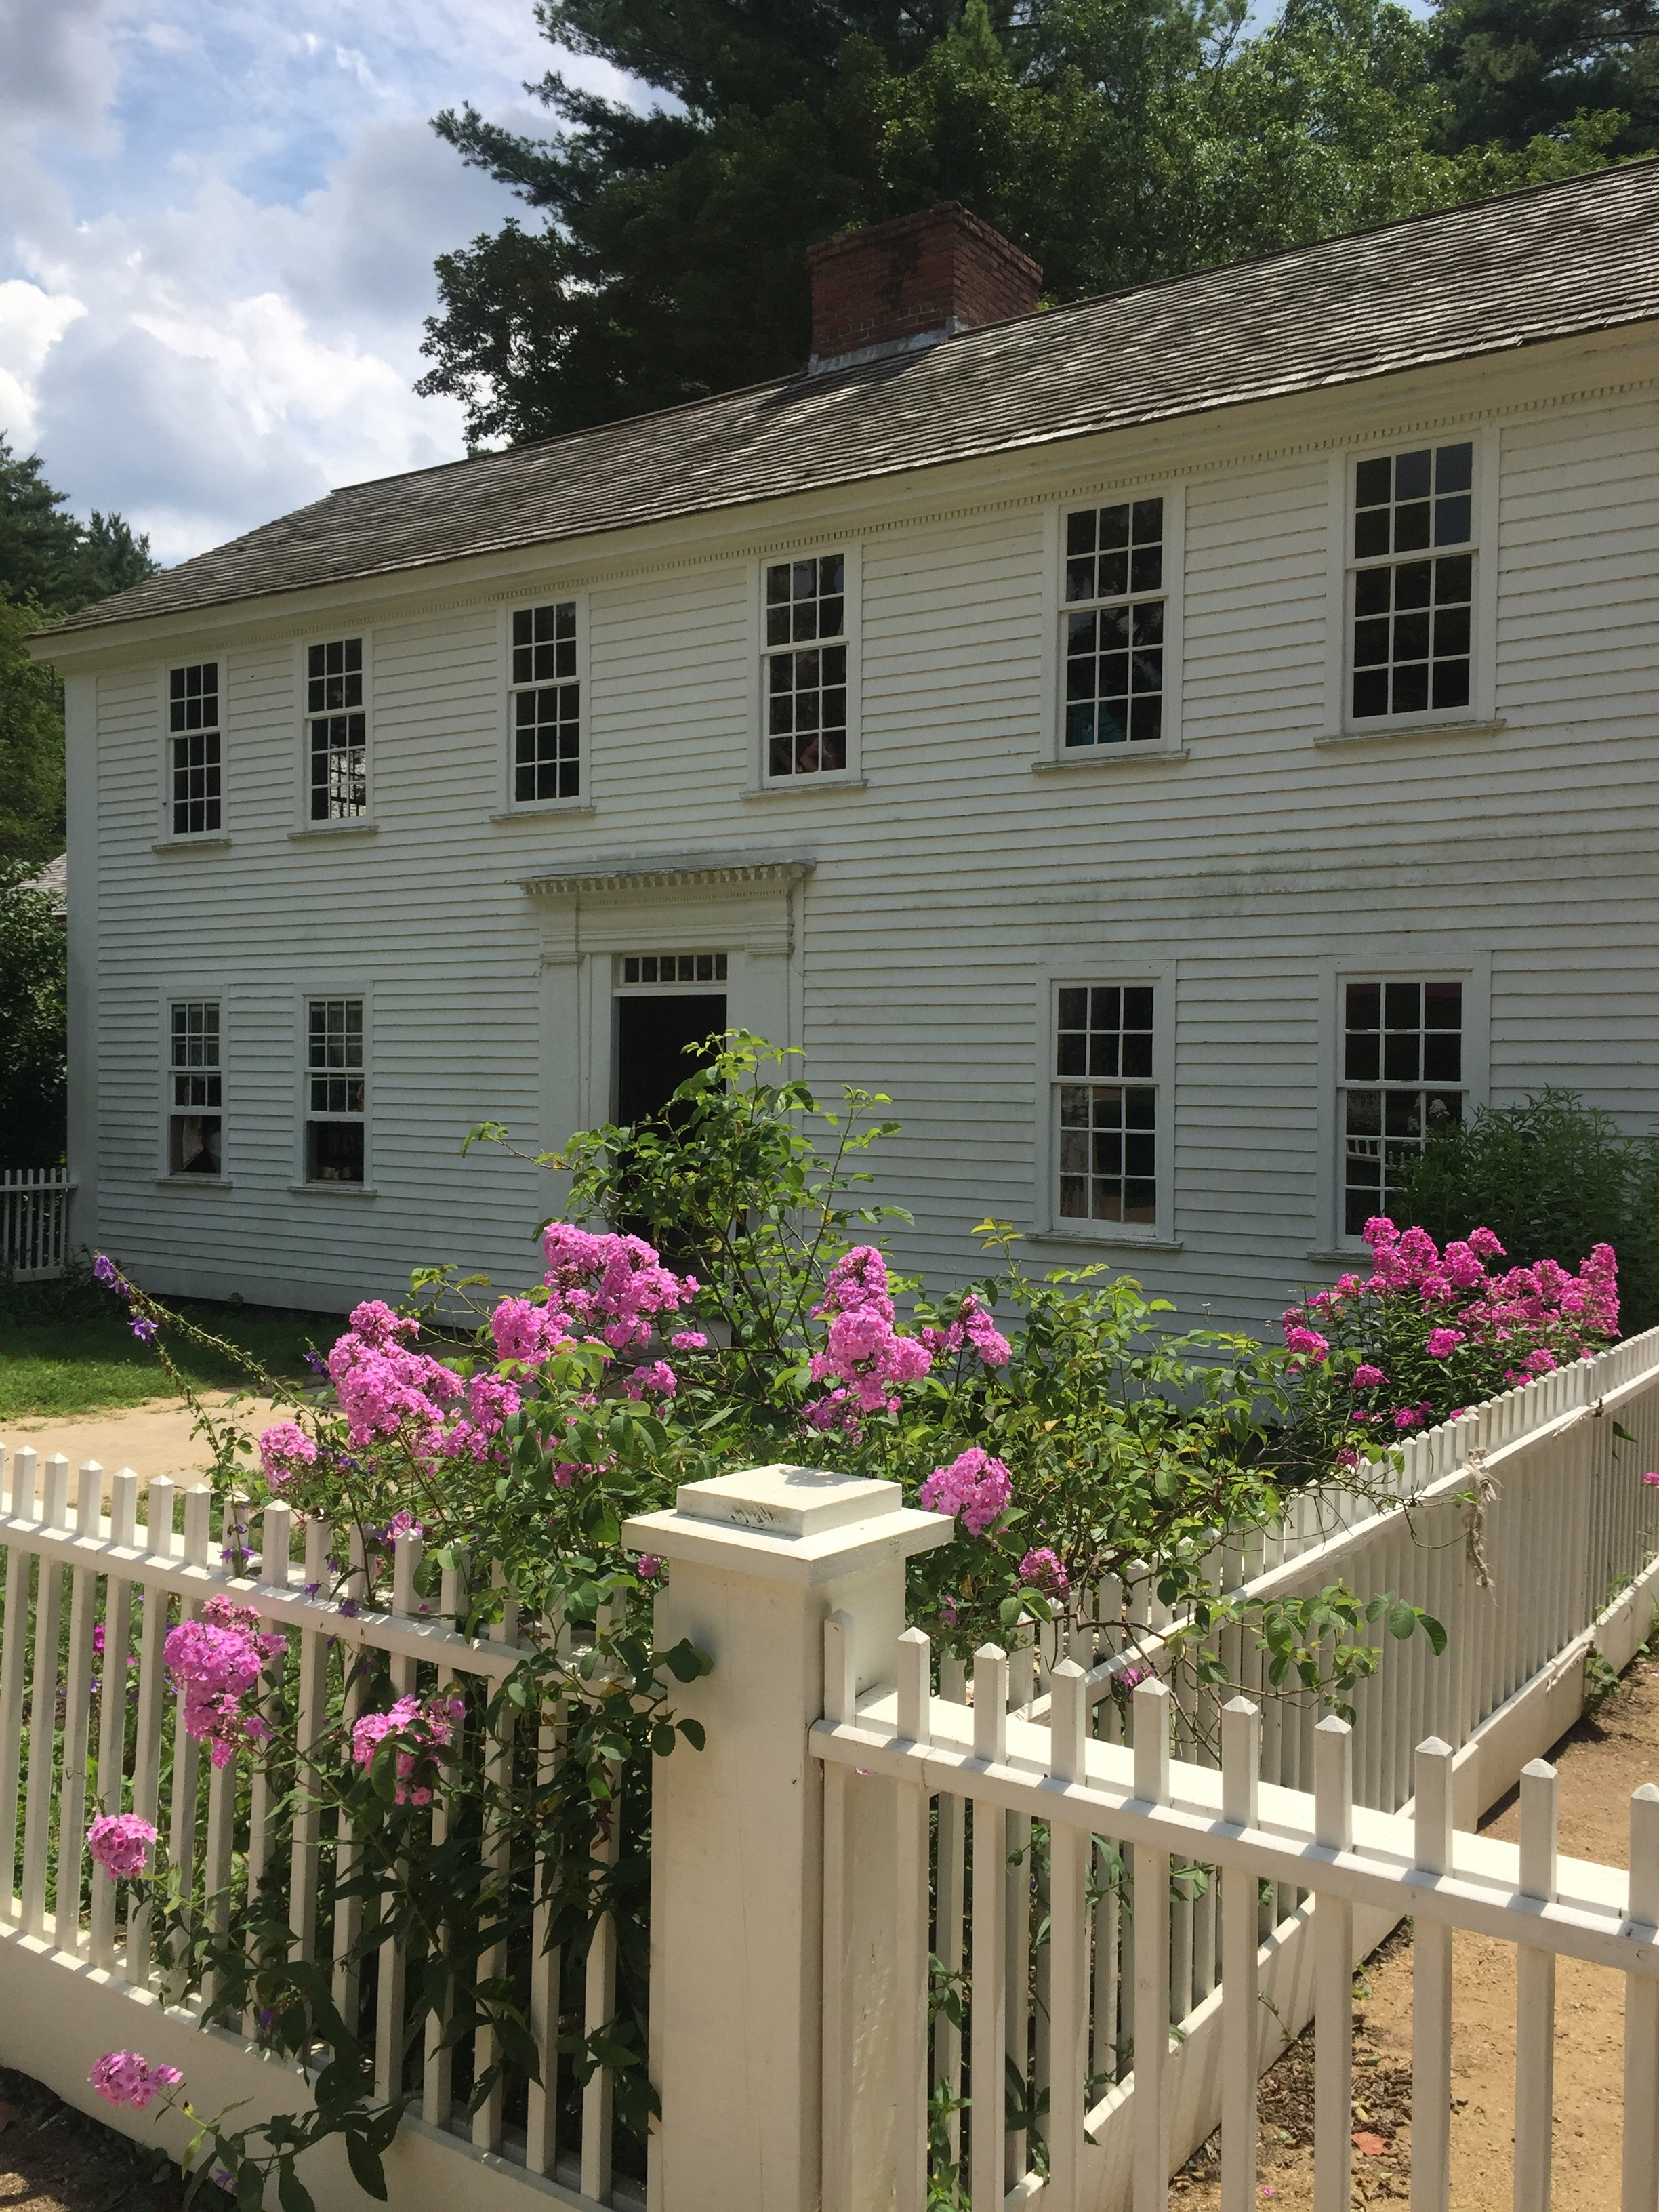 One of the many beautiful homes at Old Sturbridge Village